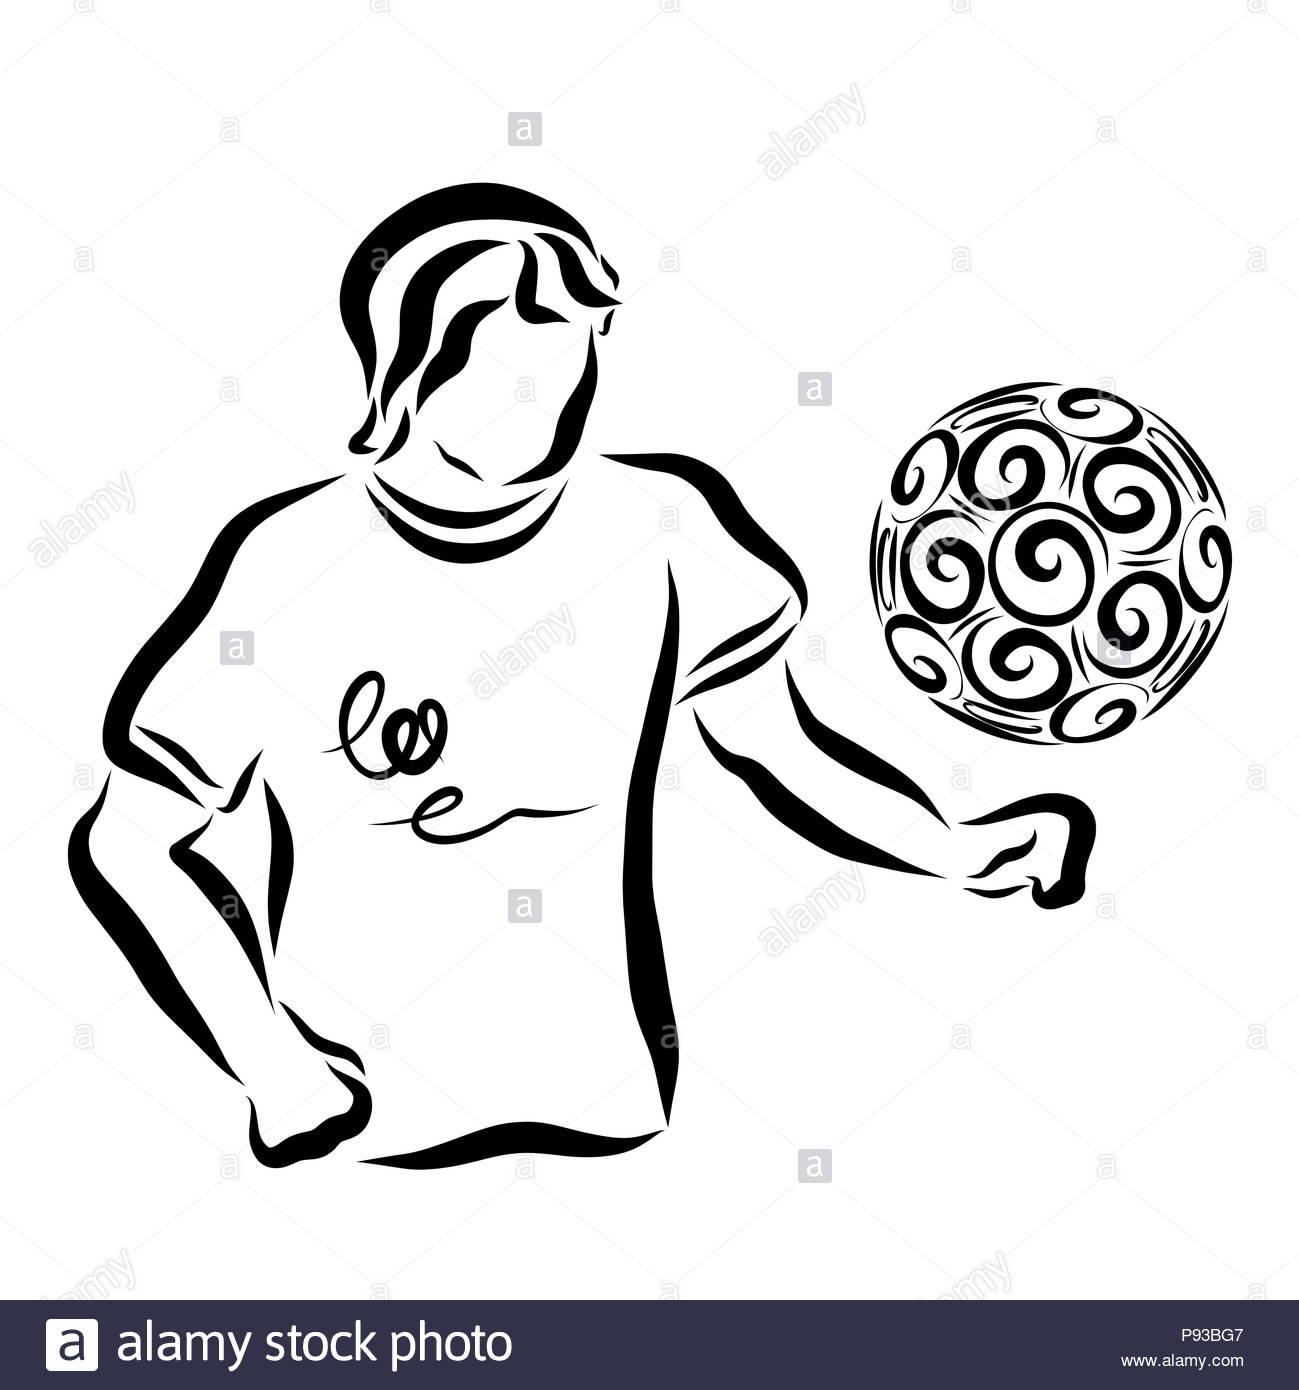 A man in a shirt and a flying ball - Stock Image